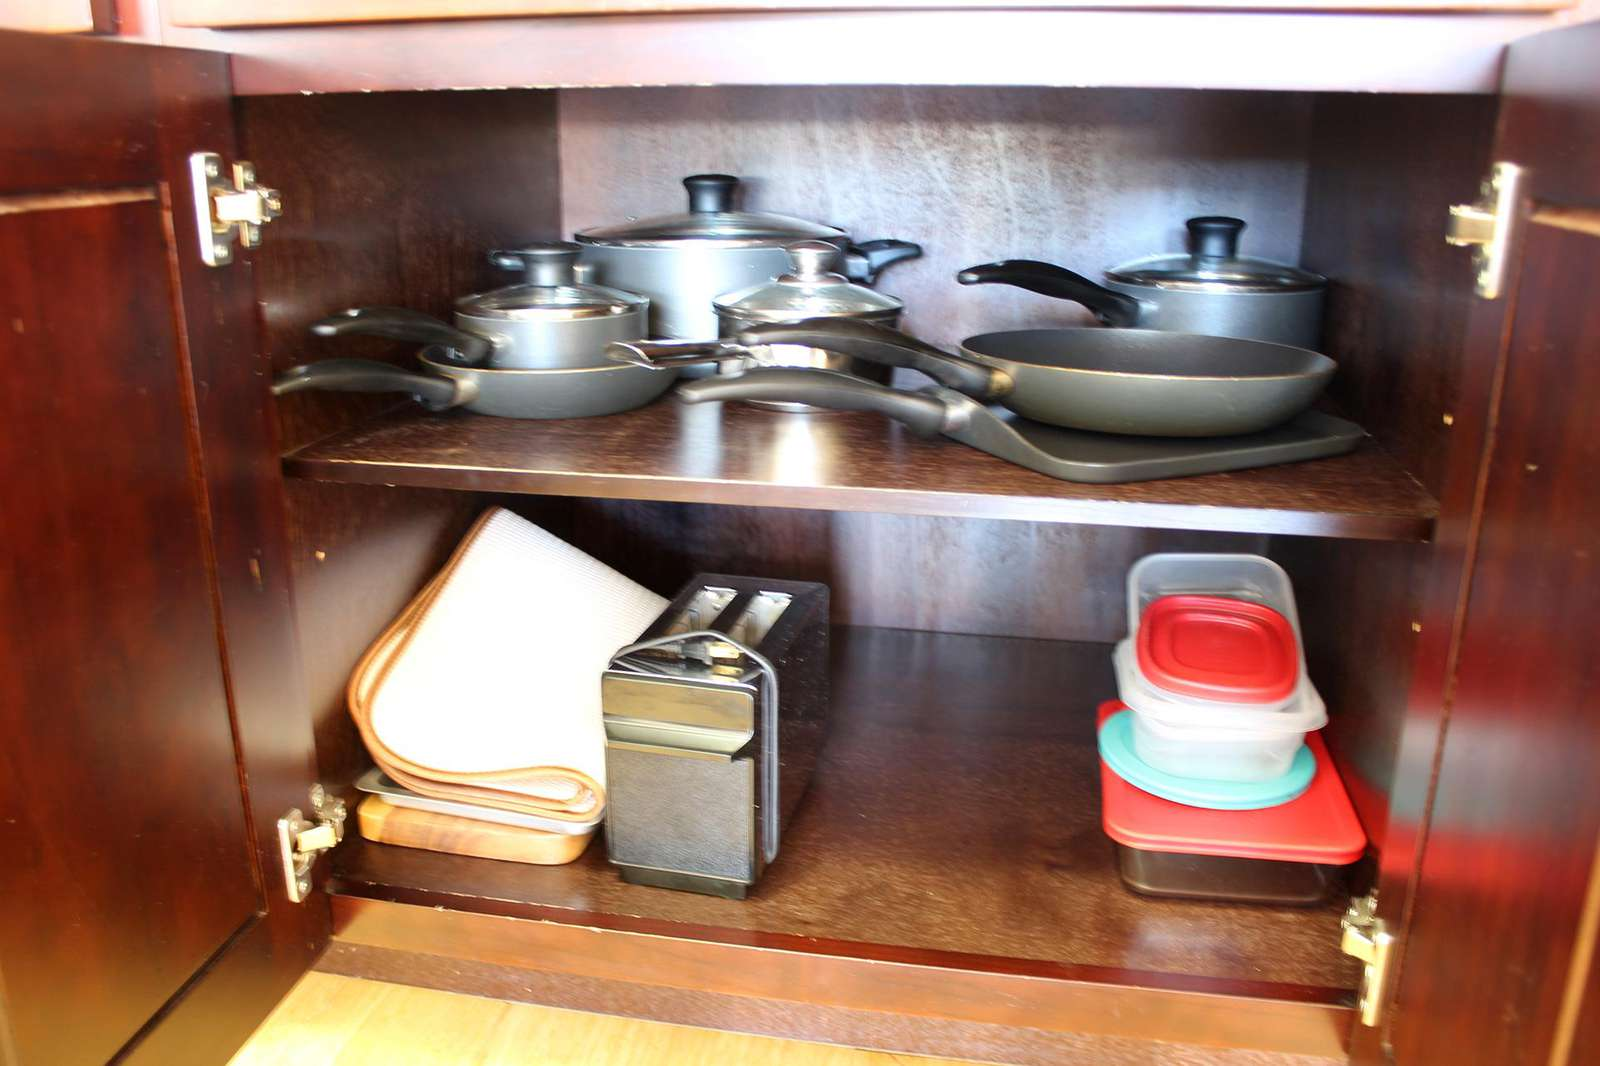 Cookware and Toaster